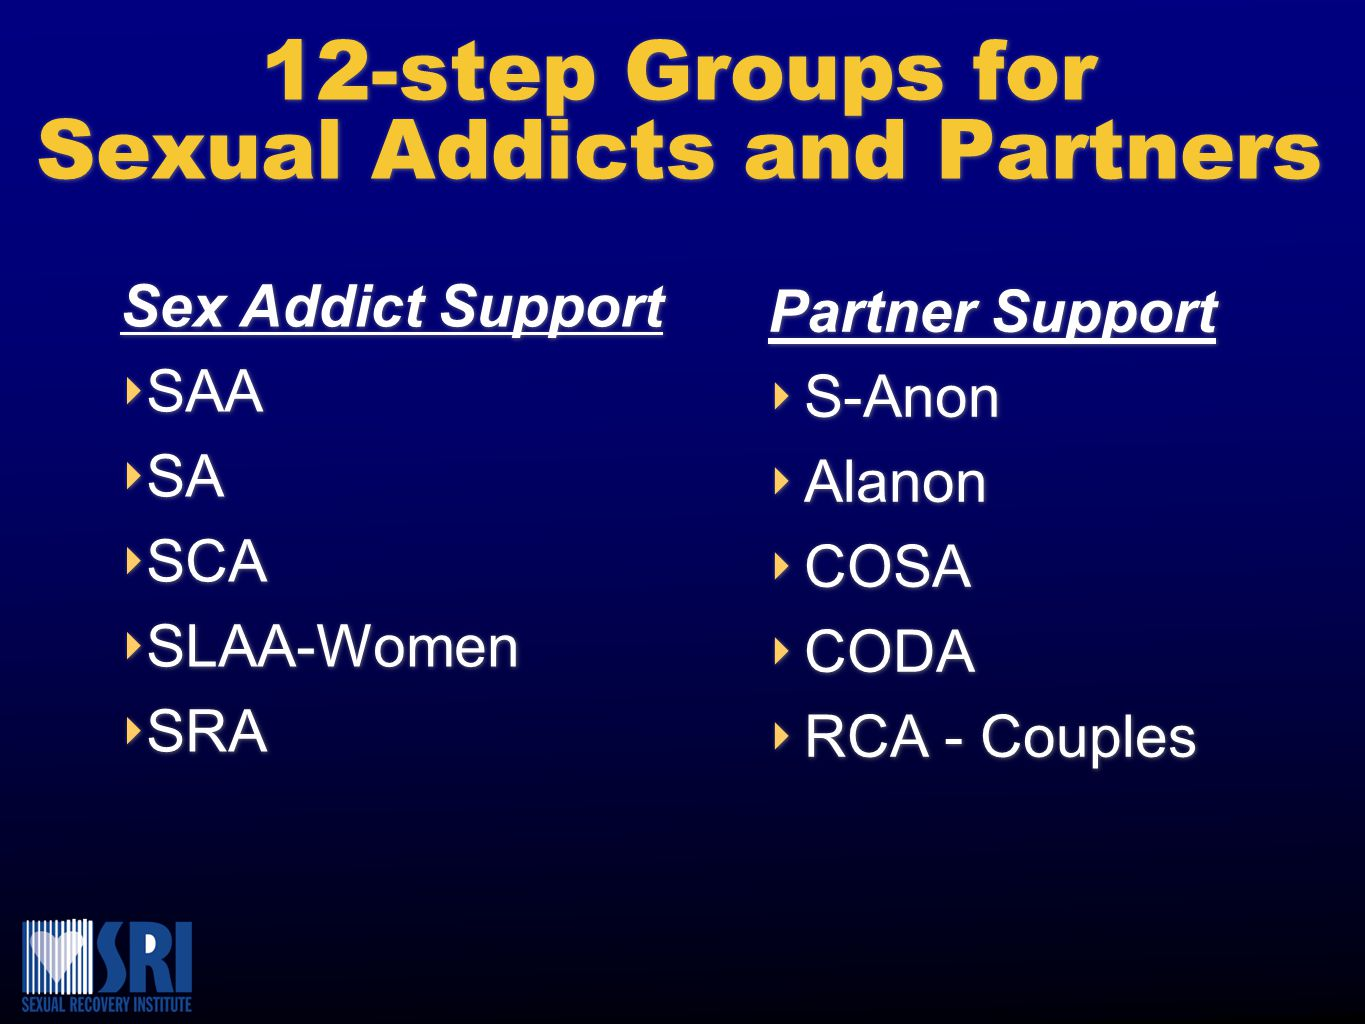 12-step Groups for Sexual Addicts and Partners 12-step Groups for Sexual Addicts and Partners Partner Support ‣ S-Anon ‣ Alanon ‣ COSA ‣ CODA ‣ RCA - Couples Partner Support ‣ S-Anon ‣ Alanon ‣ COSA ‣ CODA ‣ RCA - Couples Sex Addict Support ‣ ‣ SAA ‣ ‣ SA ‣ ‣ SCA ‣ ‣ SLAA-Women ‣ ‣ SRA Sex Addict Support ‣ ‣ SAA ‣ ‣ SA ‣ ‣ SCA ‣ ‣ SLAA-Women ‣ ‣ SRA